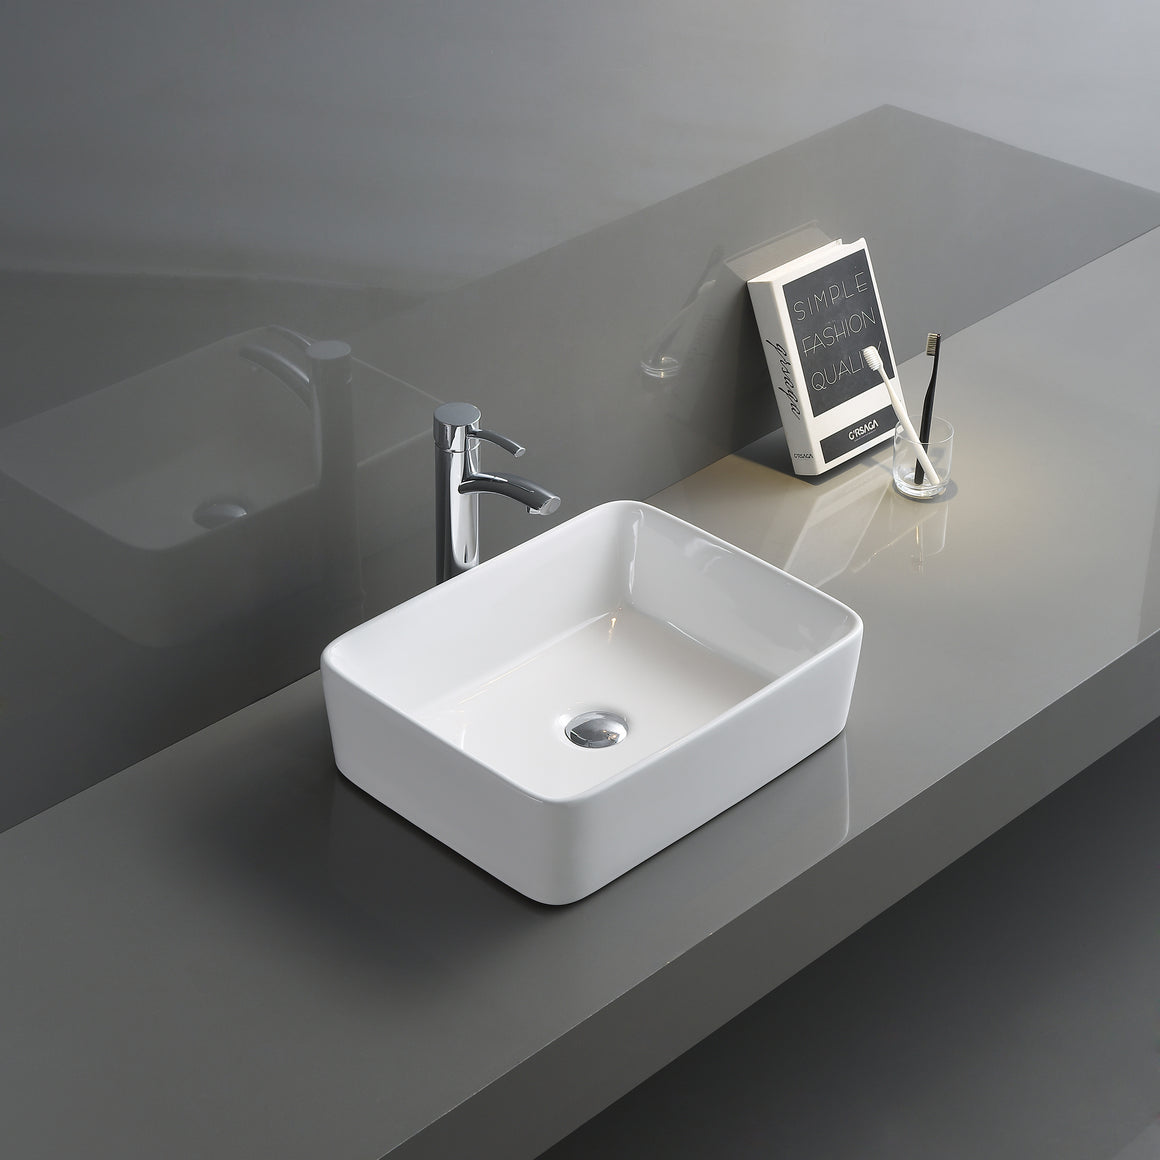 Ruvati 19 x 14 inch Bathroom Vessel Sink White Rectangular Above Vanity Counter Porcelain Ceramic